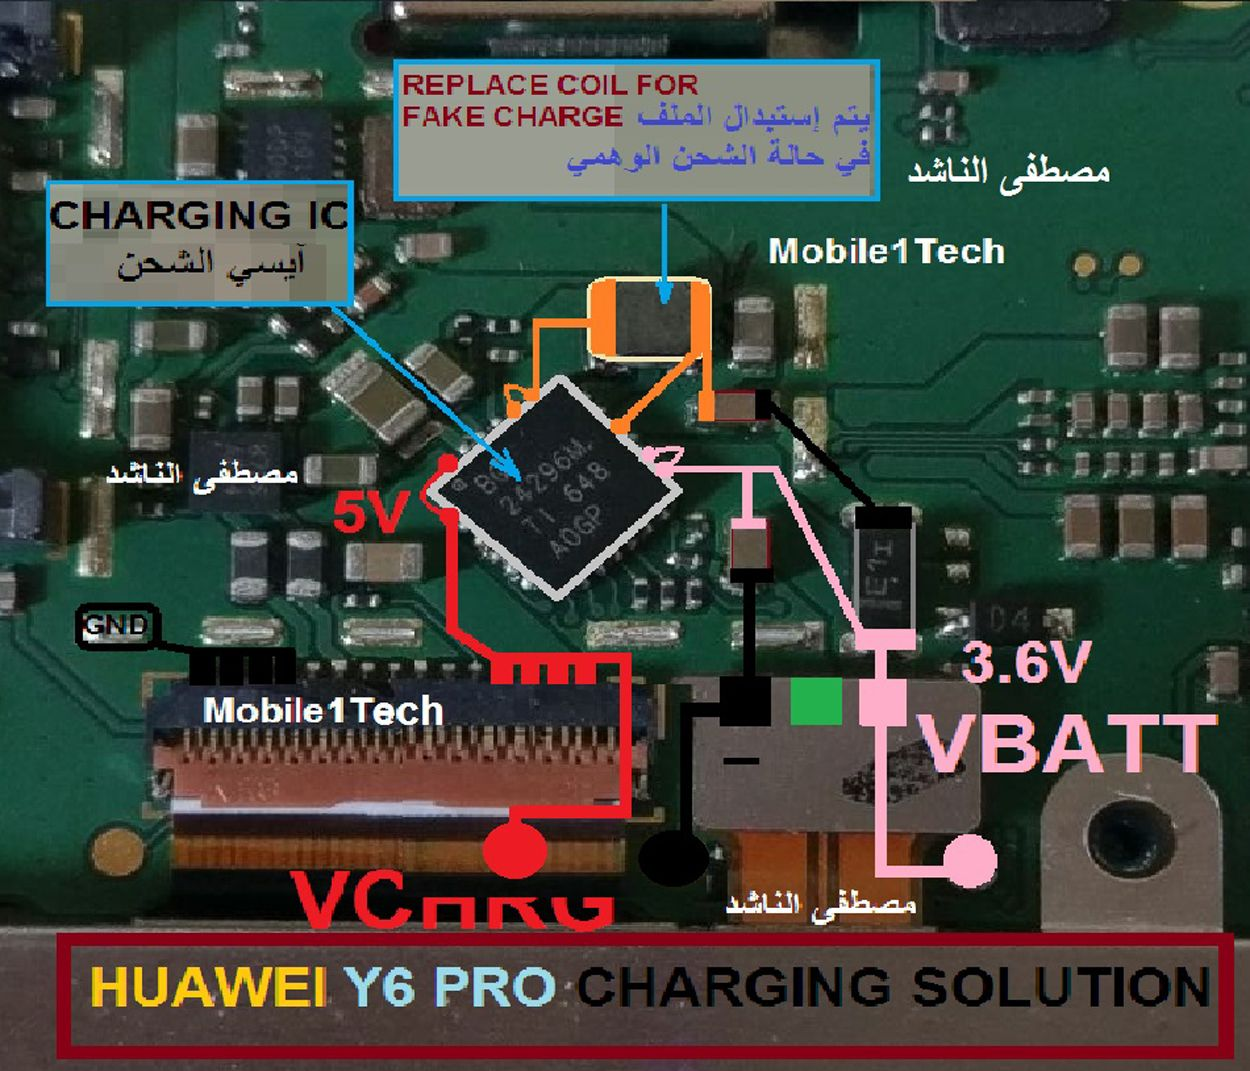 Samsung gt s7262 usb charging problem solution jumper ways - Huawei Y6 Pro Charging Solution Jumper Problem Ways